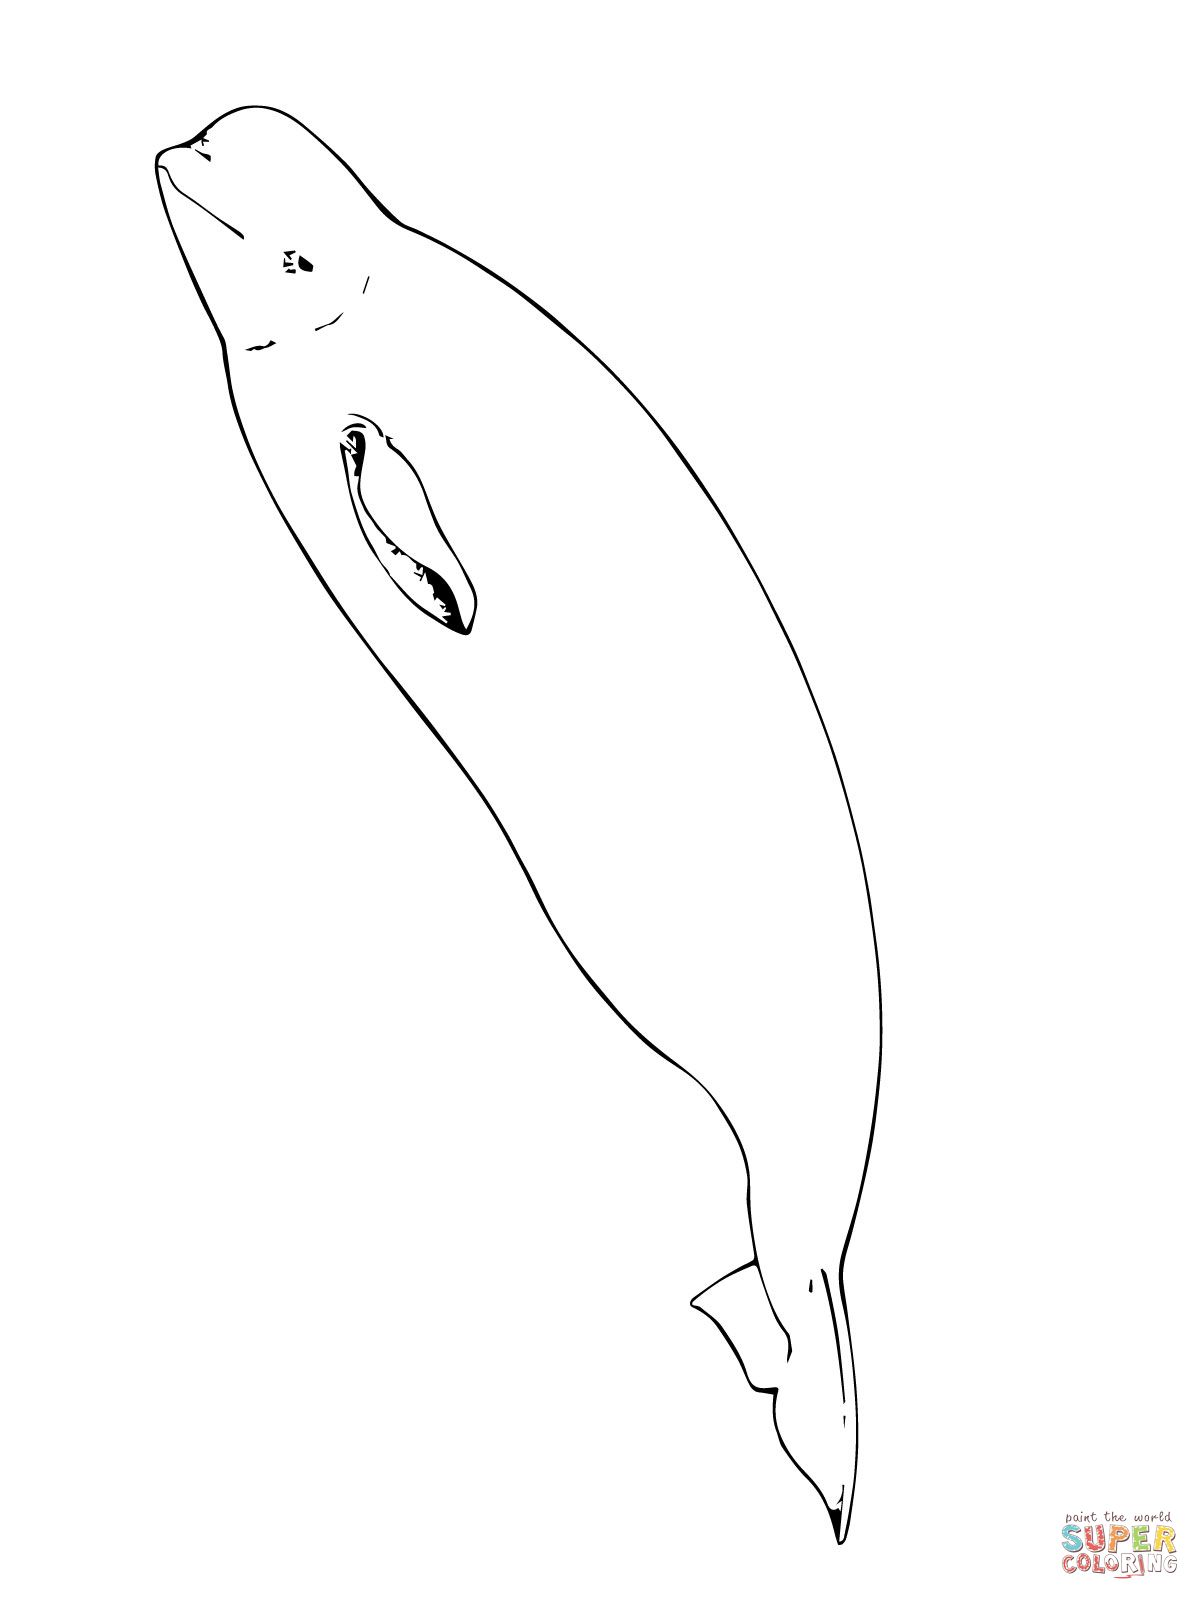 Beluga Whale Coloring Page Jpg 1200 1600 Whale Coloring Pages Coloring Pages Animal Coloring Pages